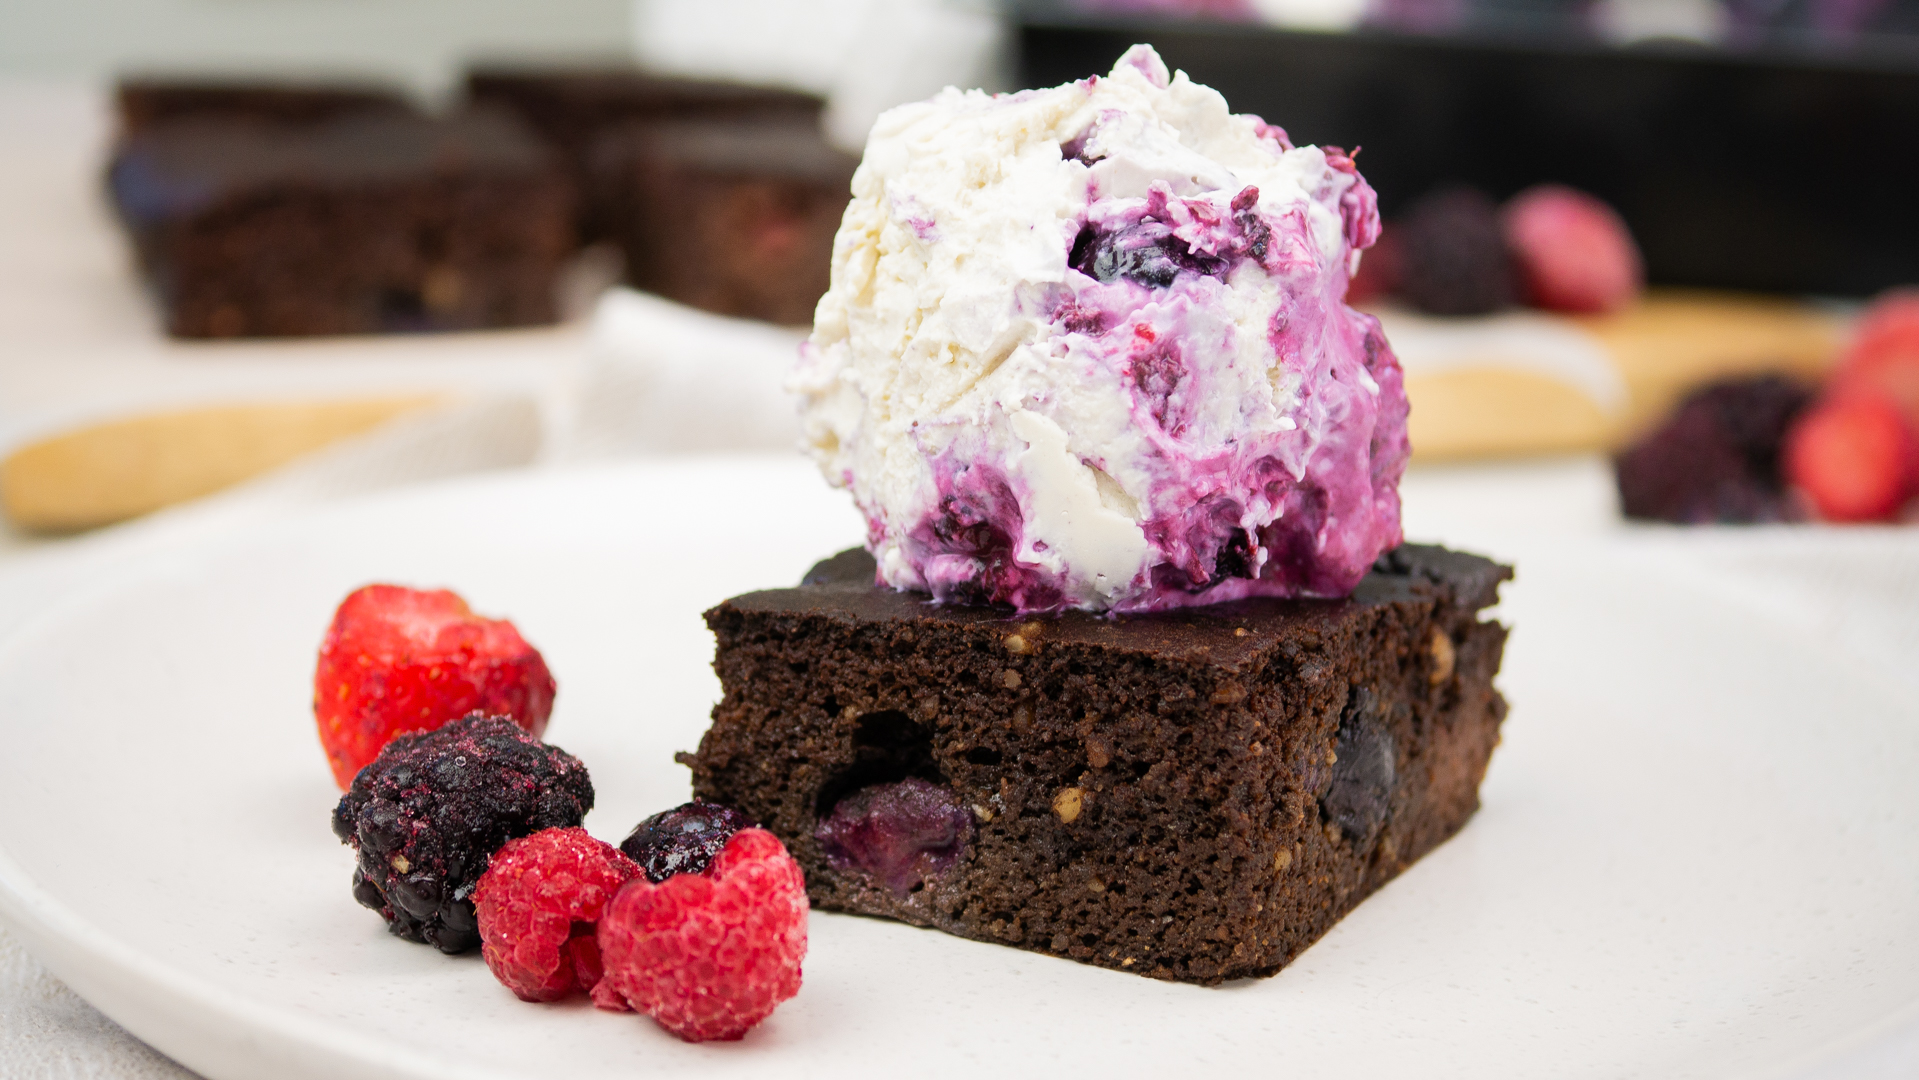 Chocolate & Berry Brownie topped with Coconut & Berry Ice Cream